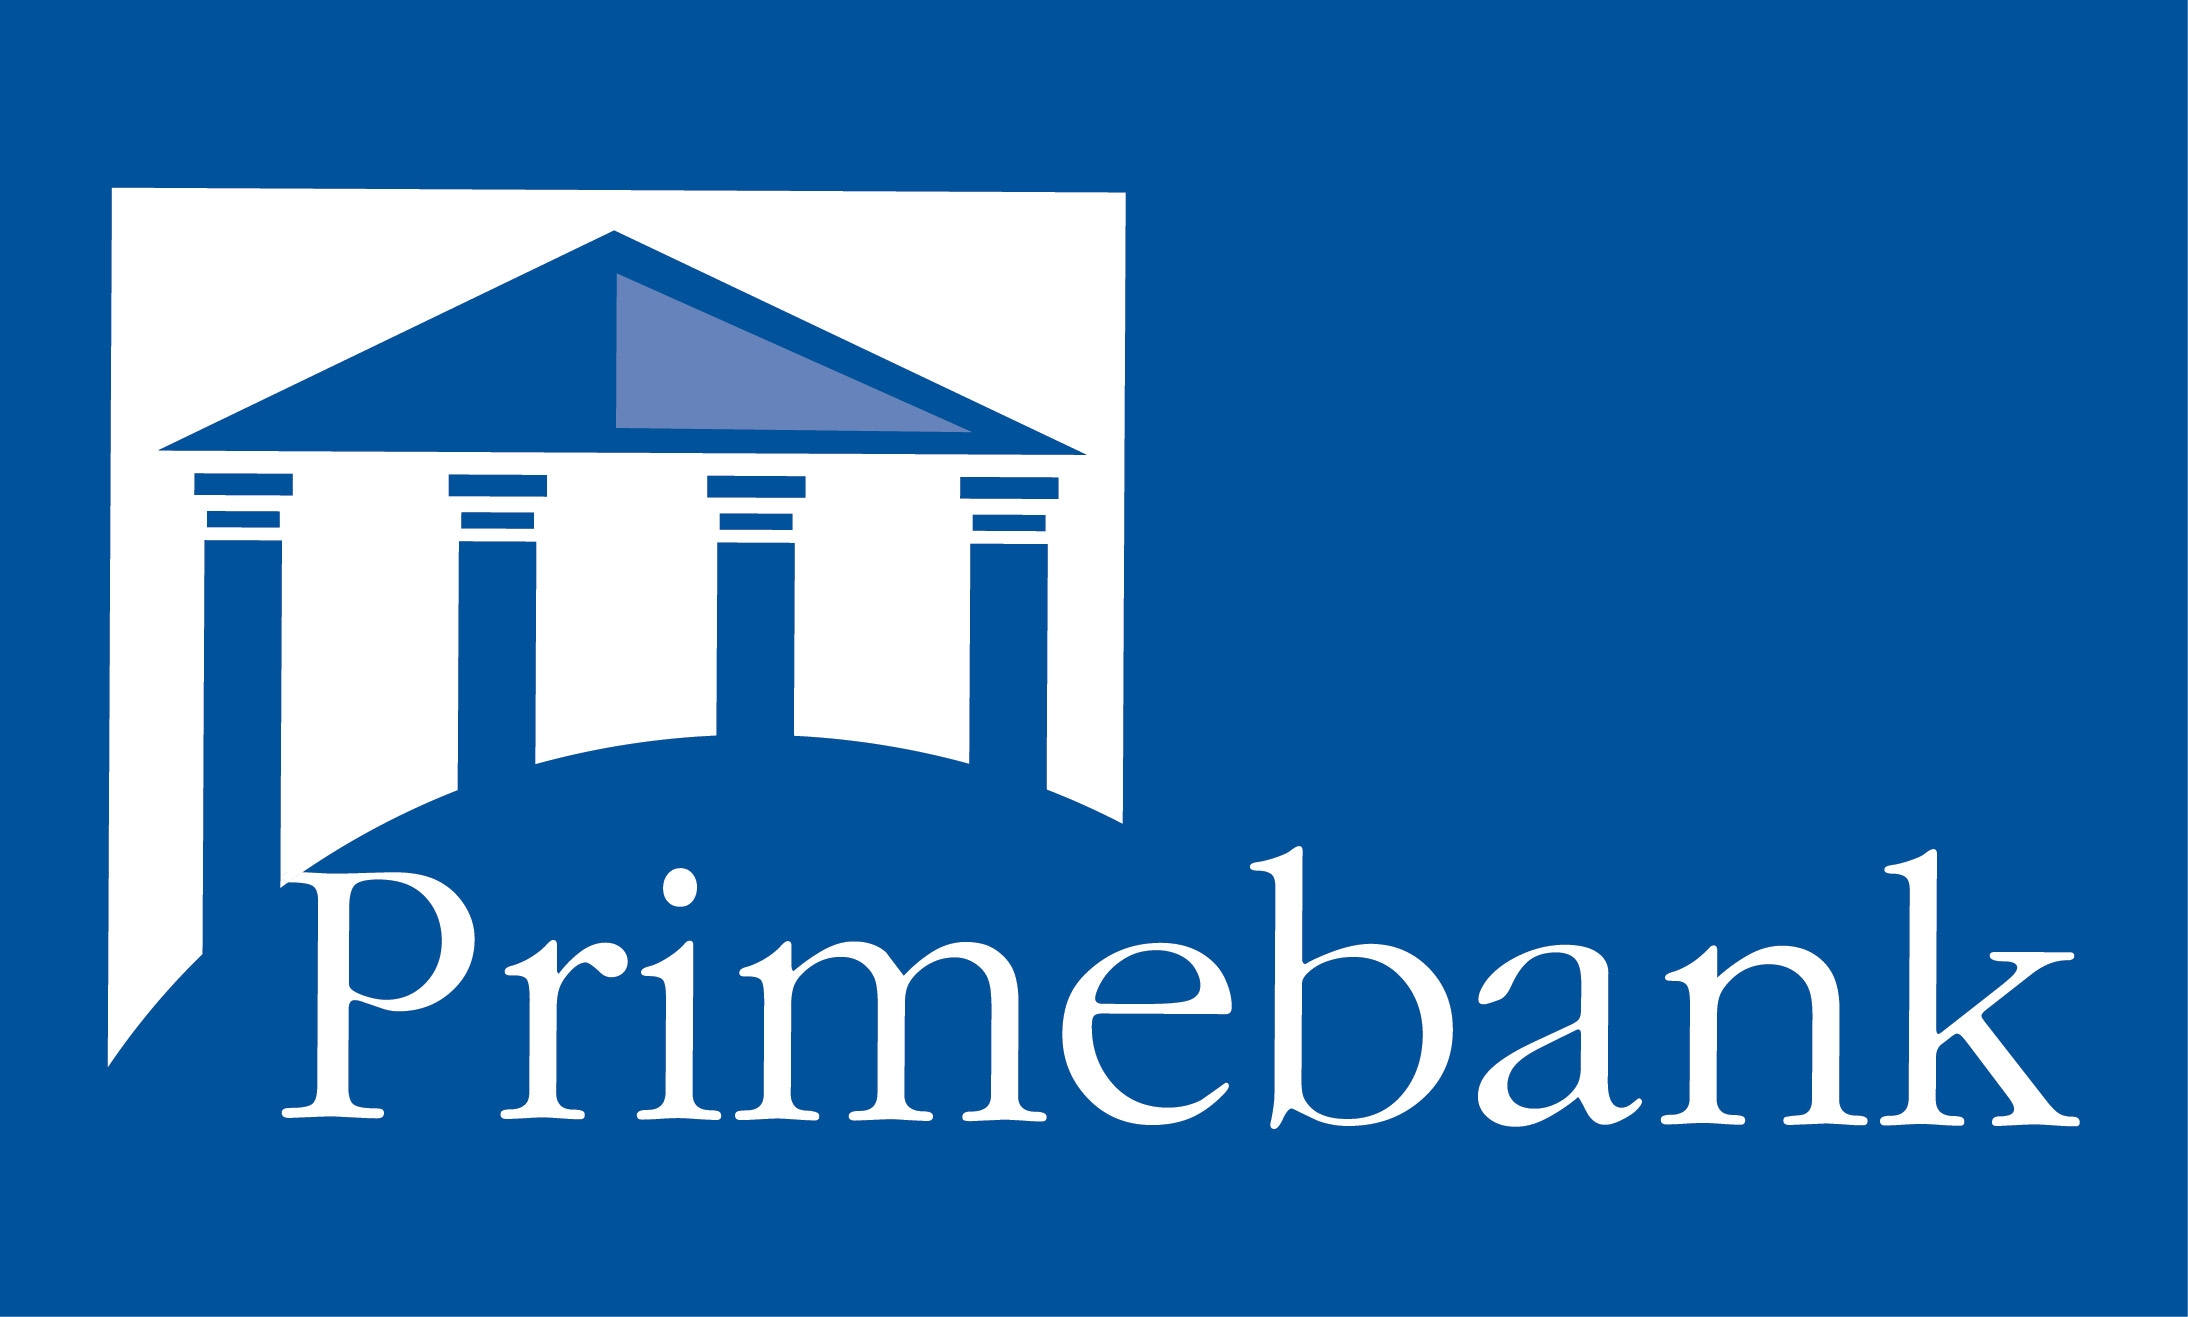 Primebank Employee Apparel